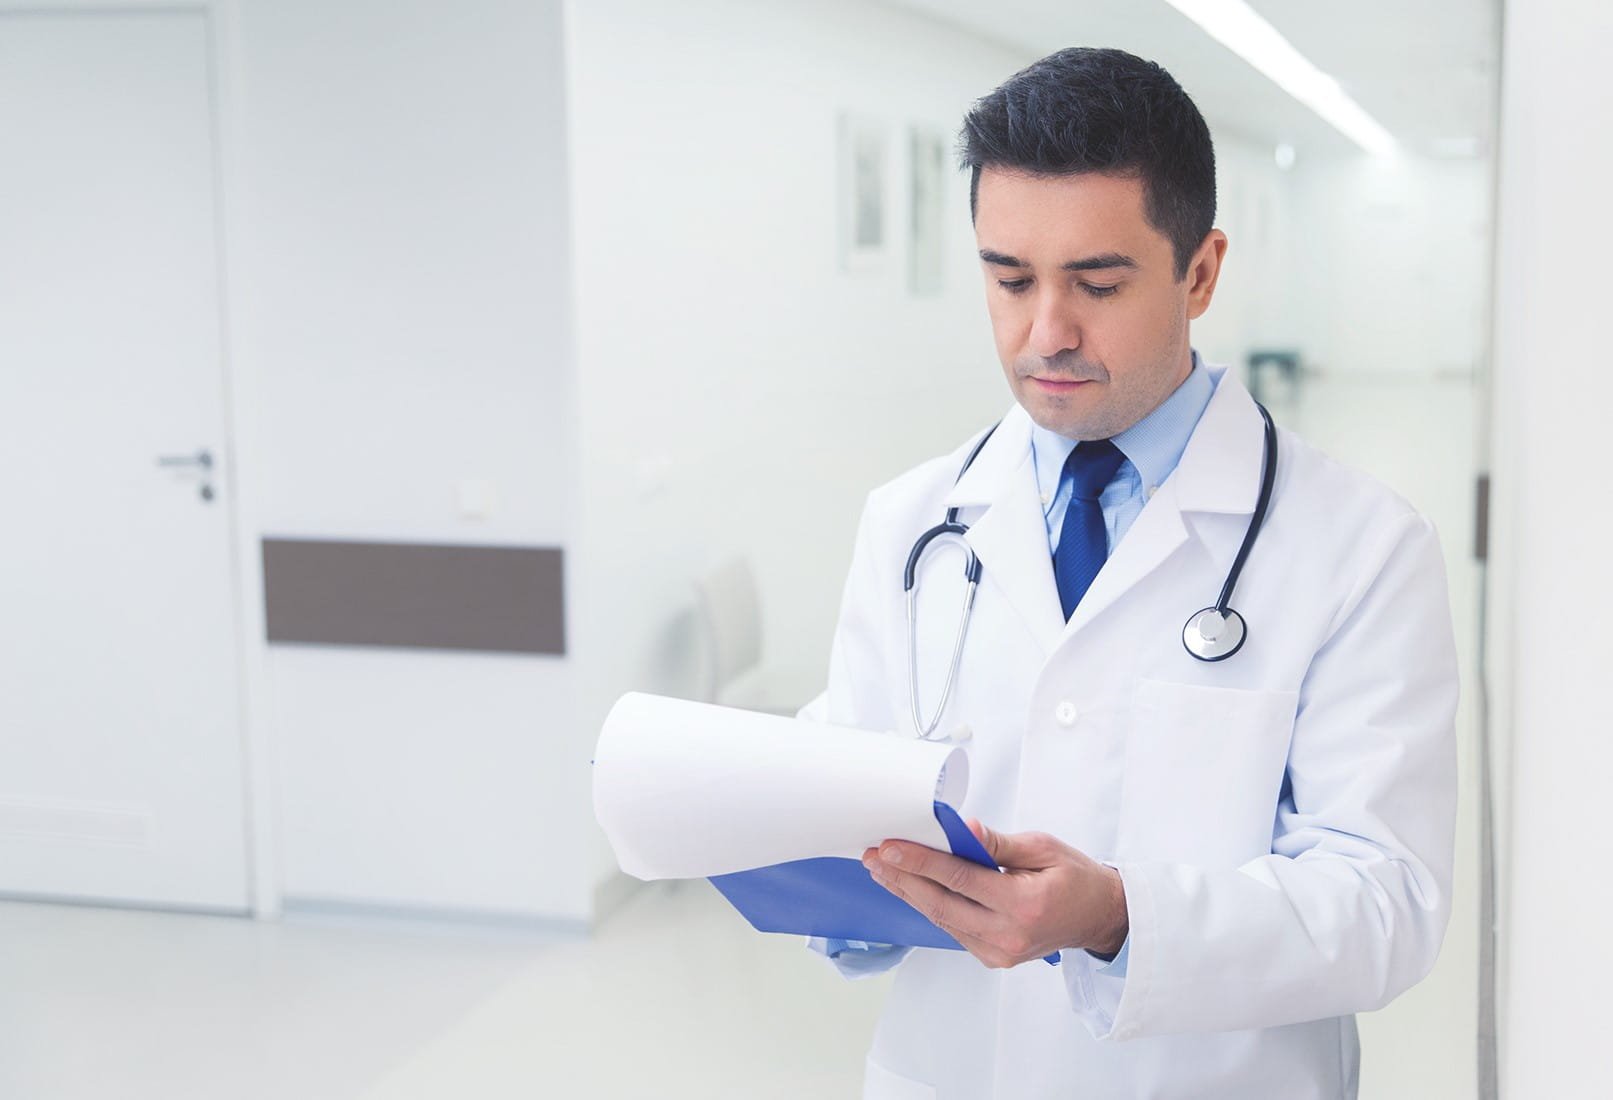 doctor writing to clipboard